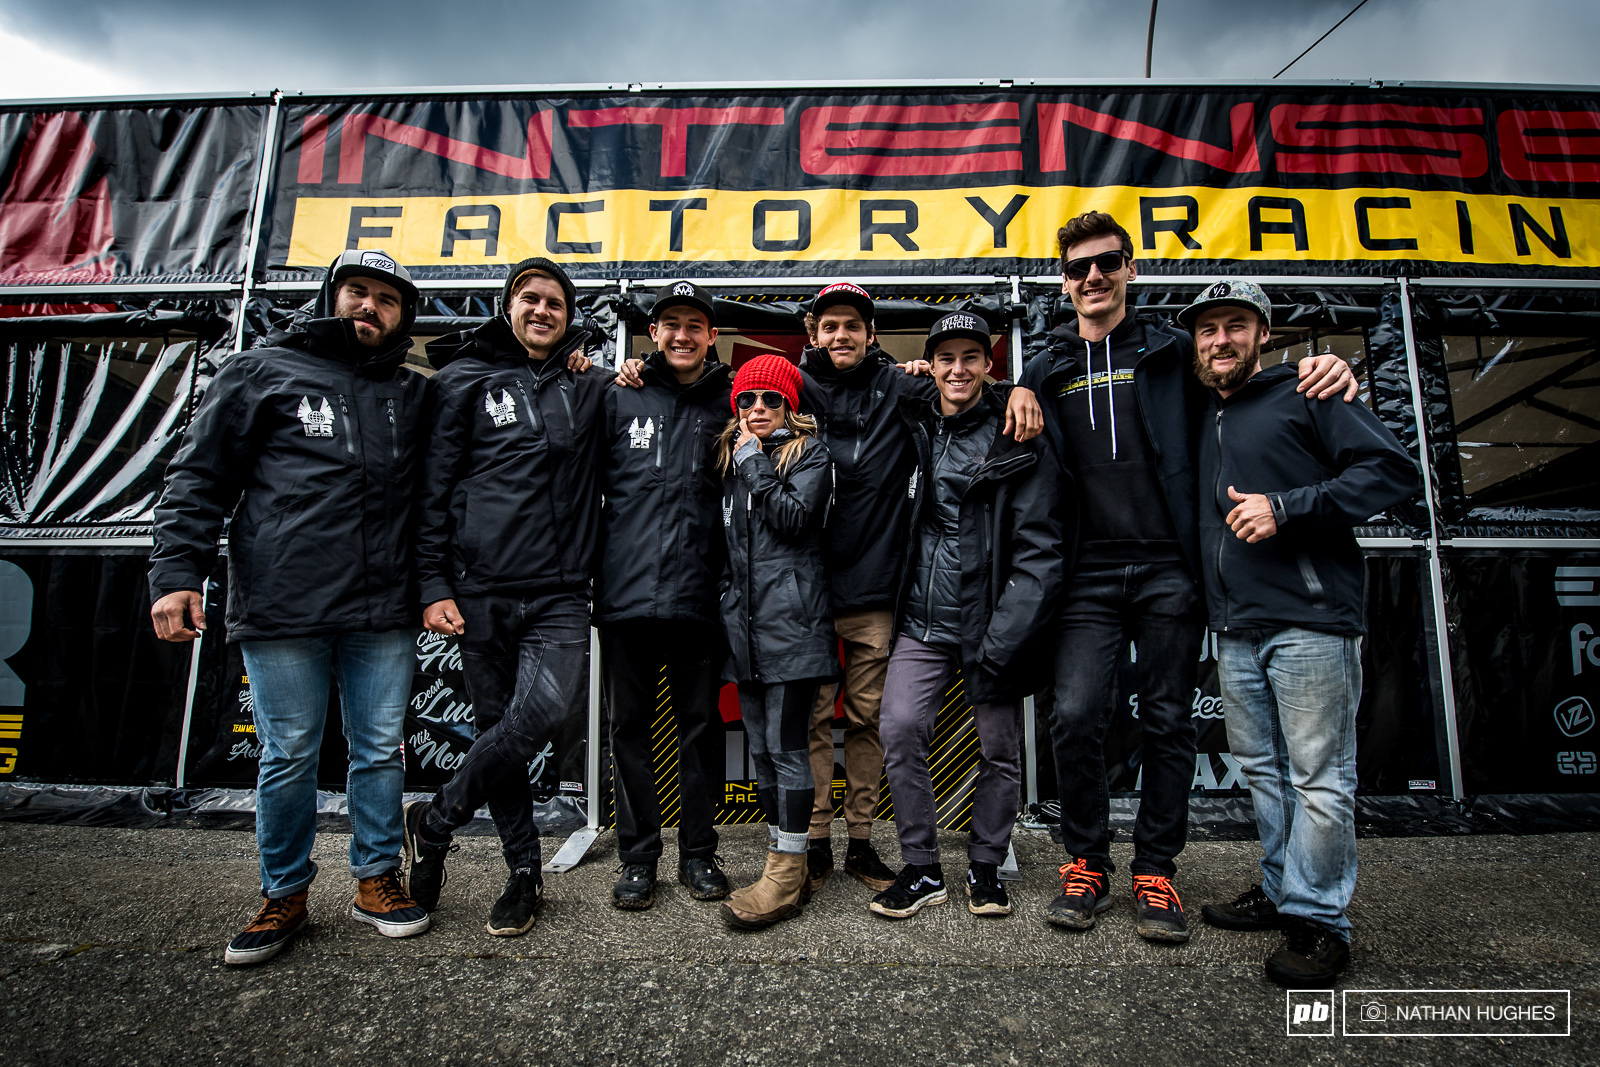 The complete Intense Factory Racing crew in front of their shiny new pit set-up.